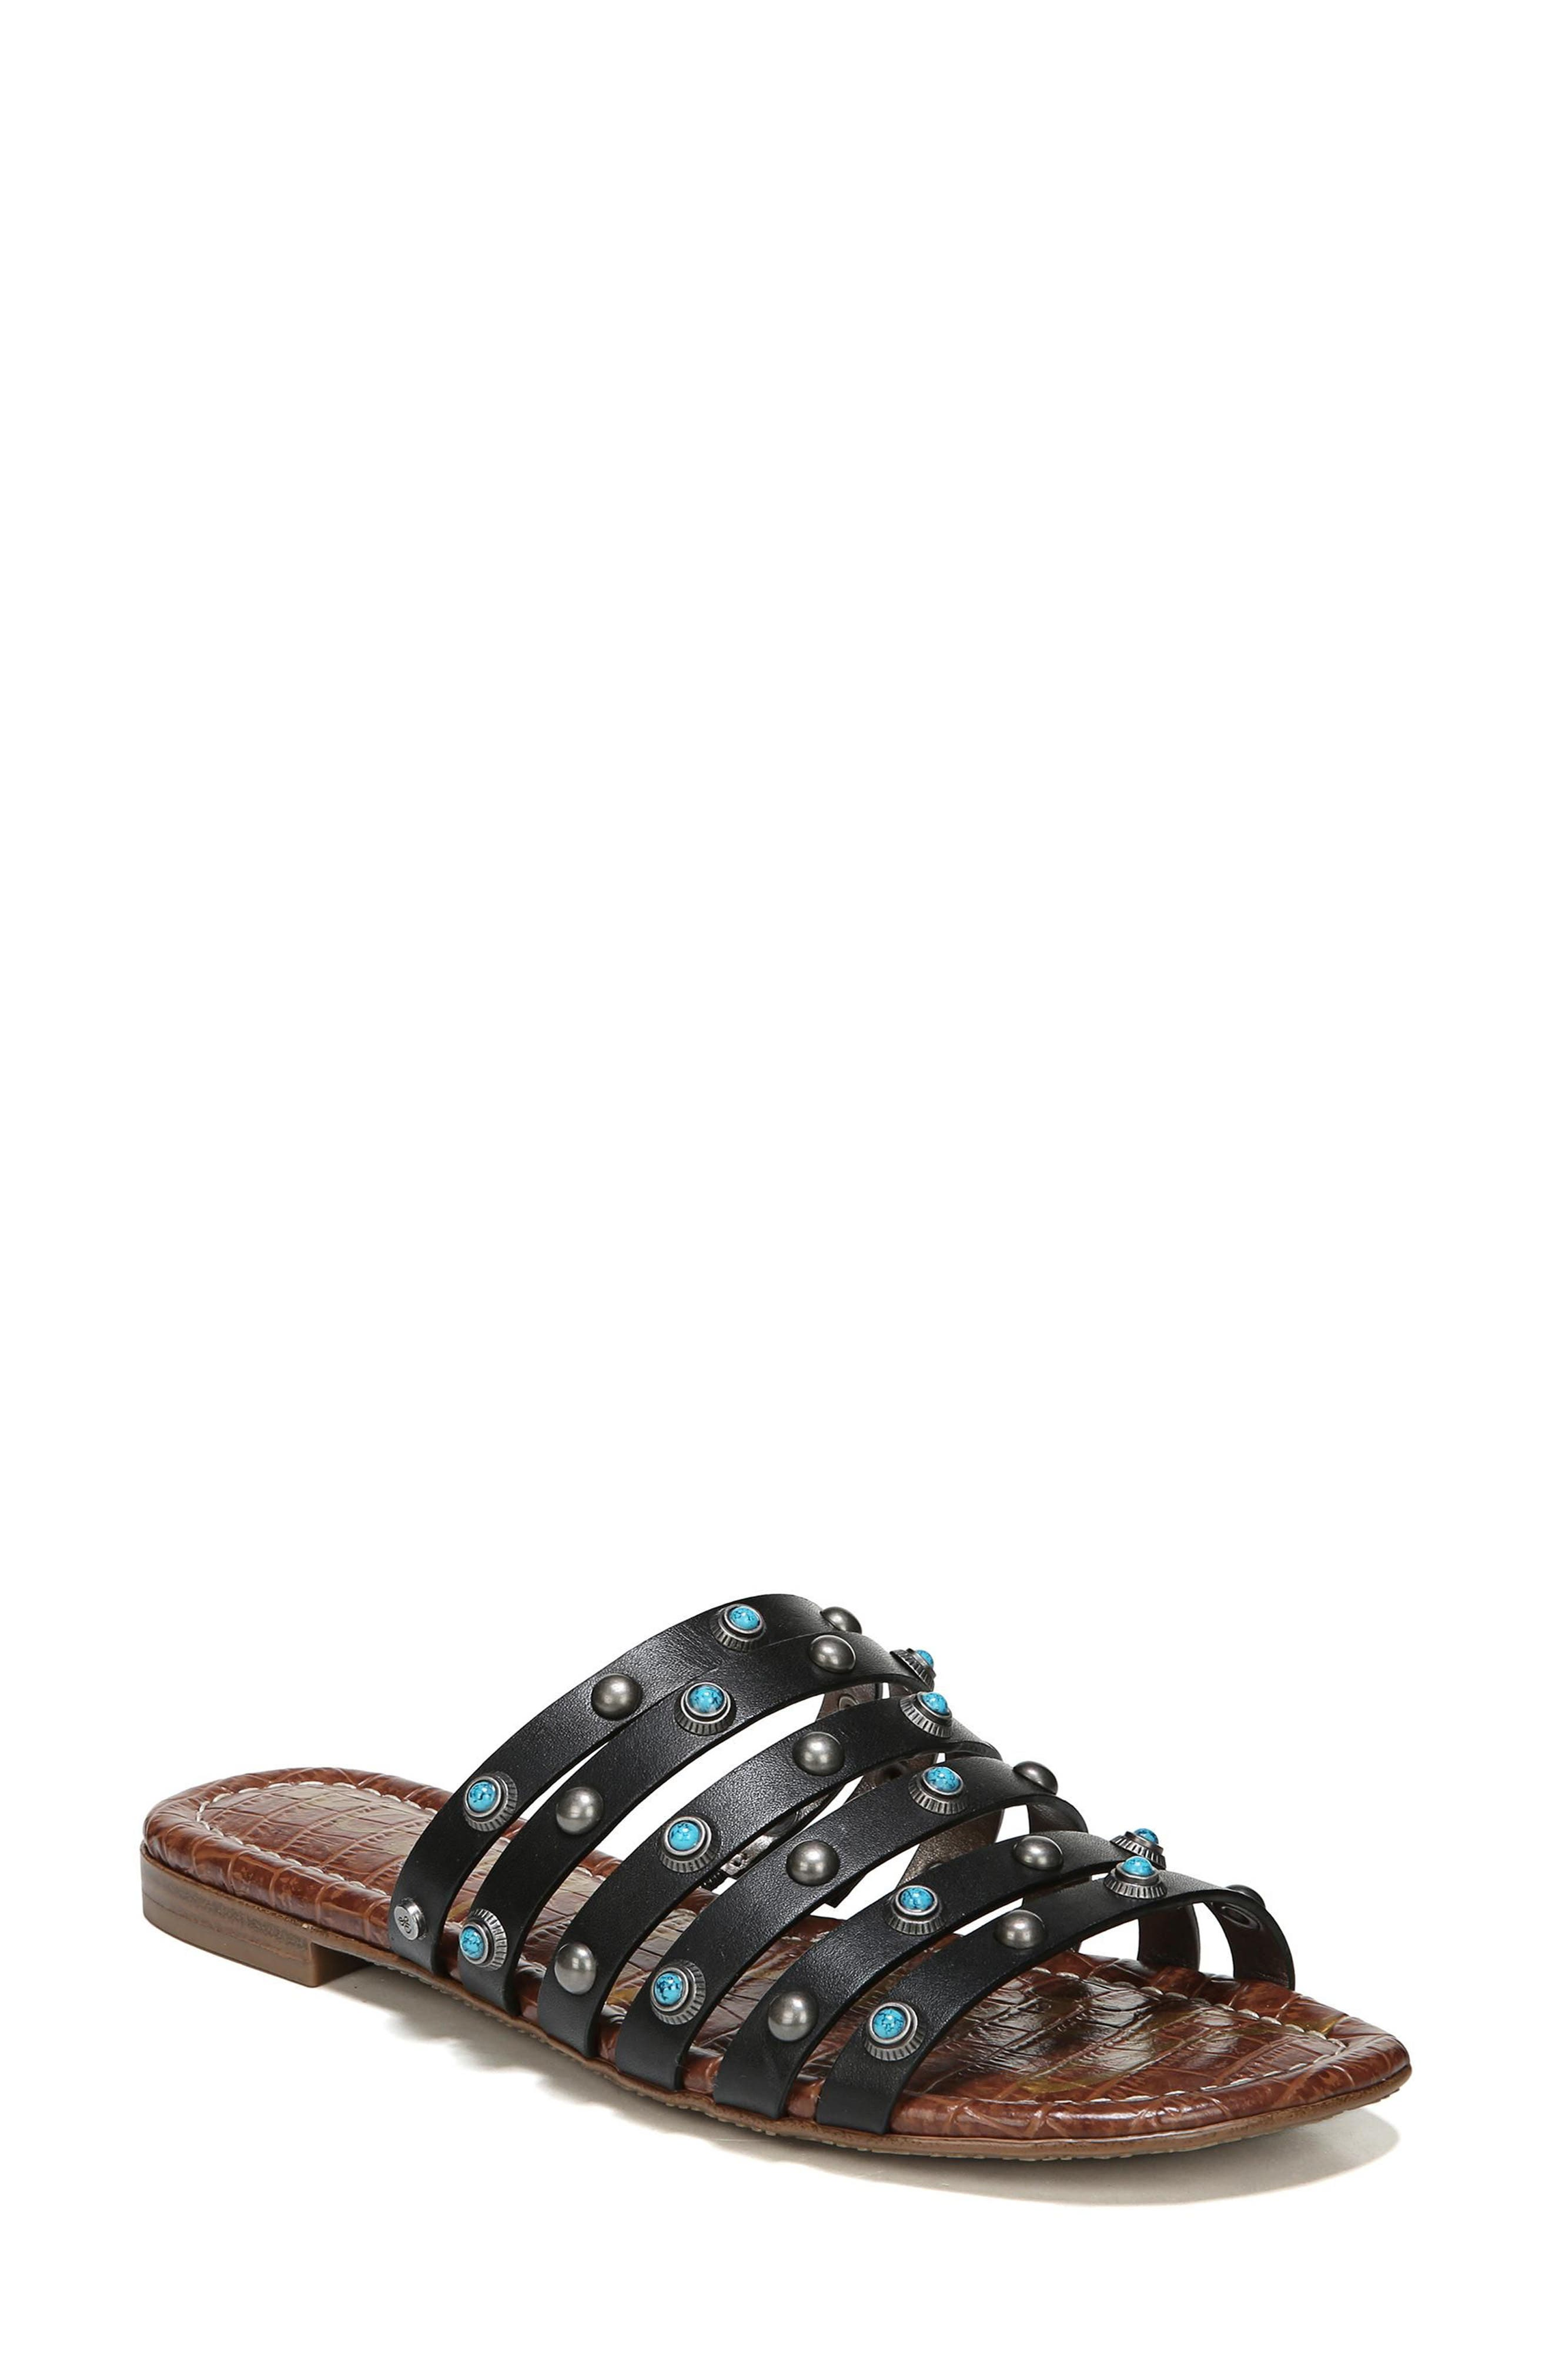 Brea Studded Slide Sandal,                             Main thumbnail 1, color,